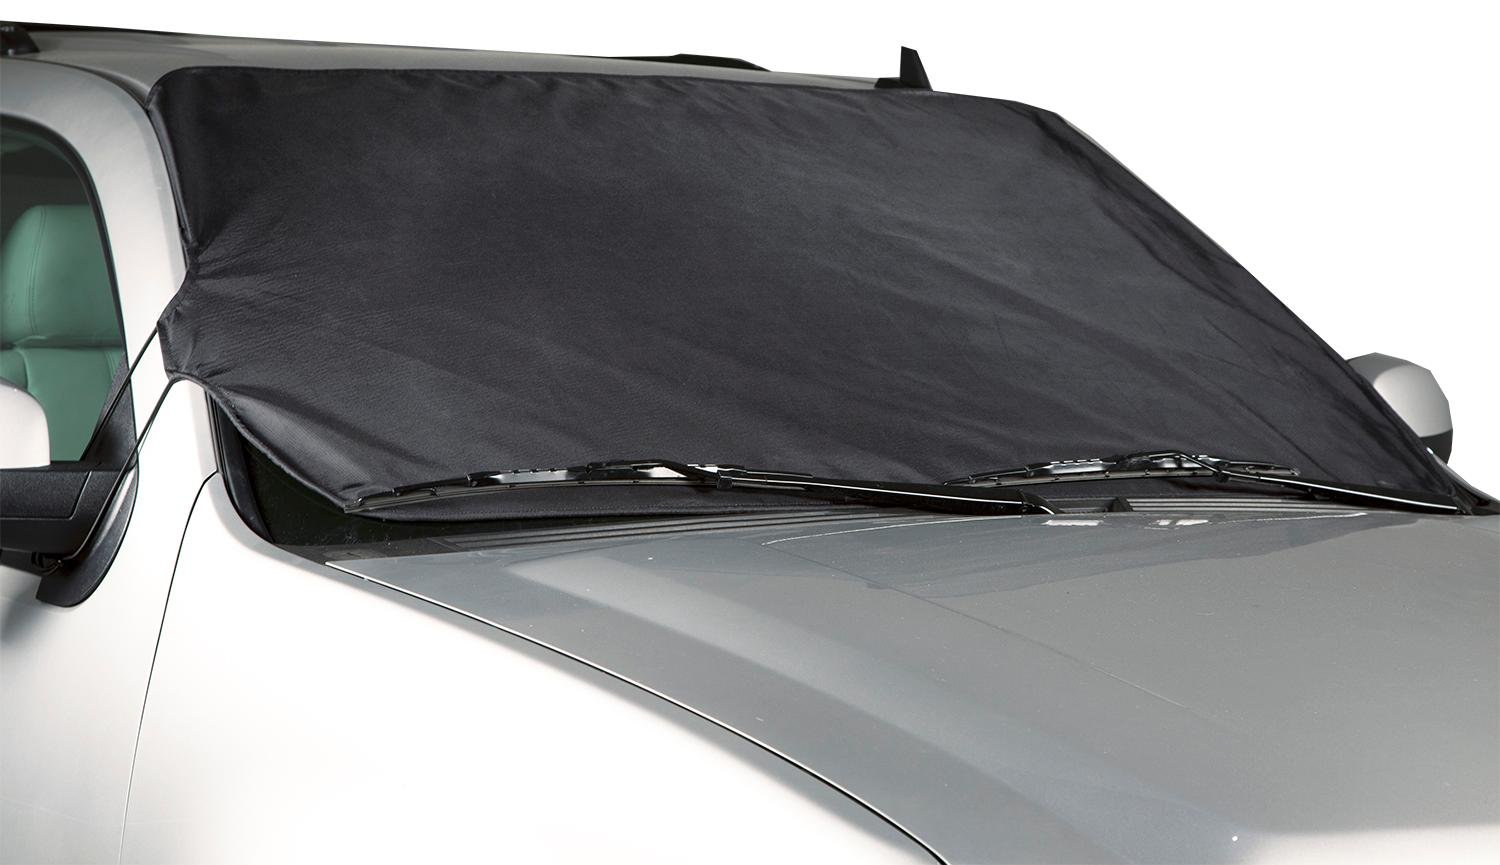 Coverking Custom Windshield Snow Cover/Frost Shield for Select Chrysler Town & Country Models - Ballistic (Black) CFS1E1CR3042